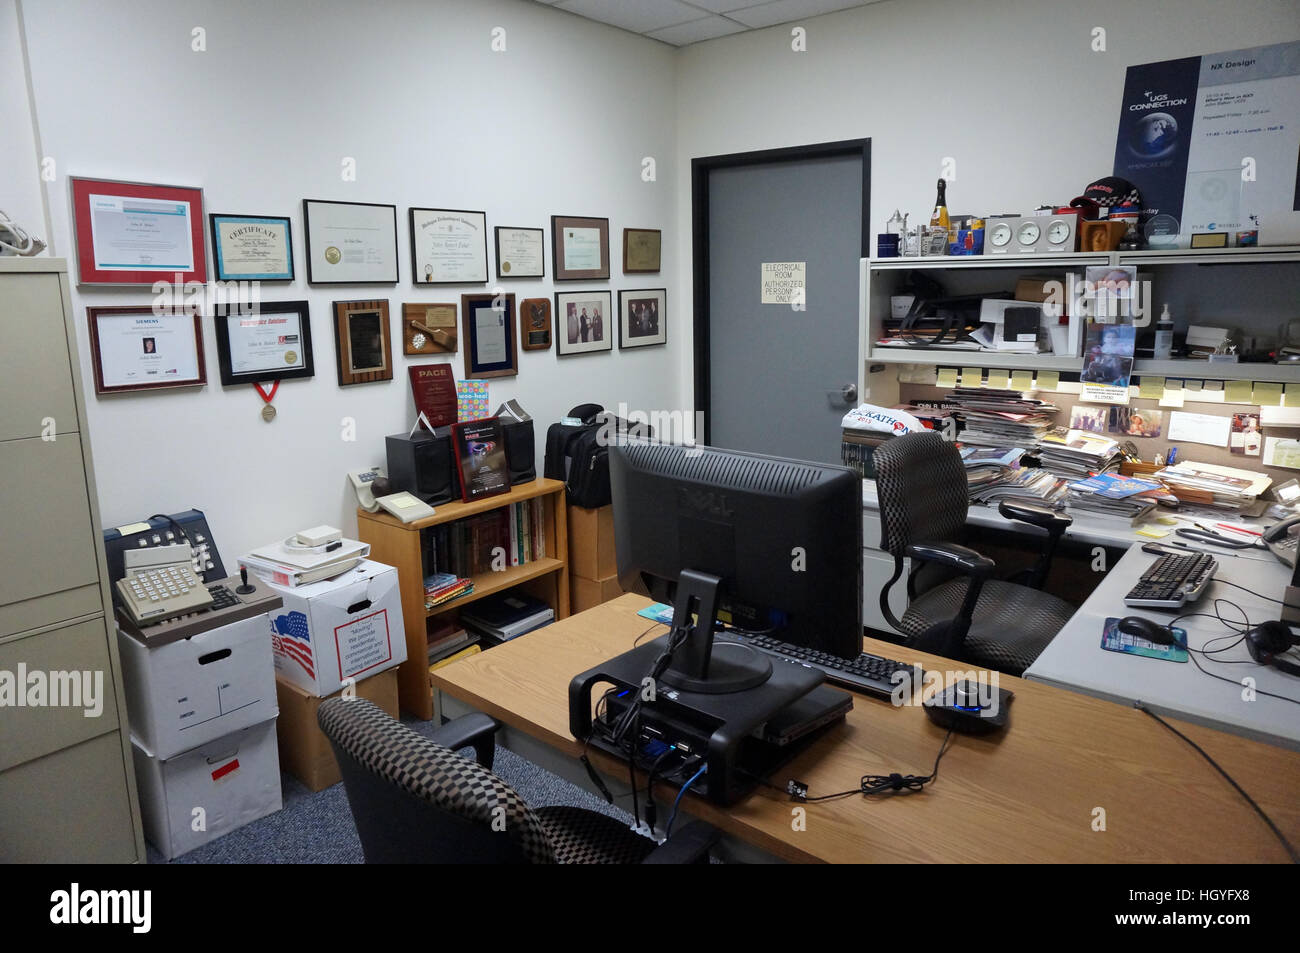 Cluttered Office - Stock Image